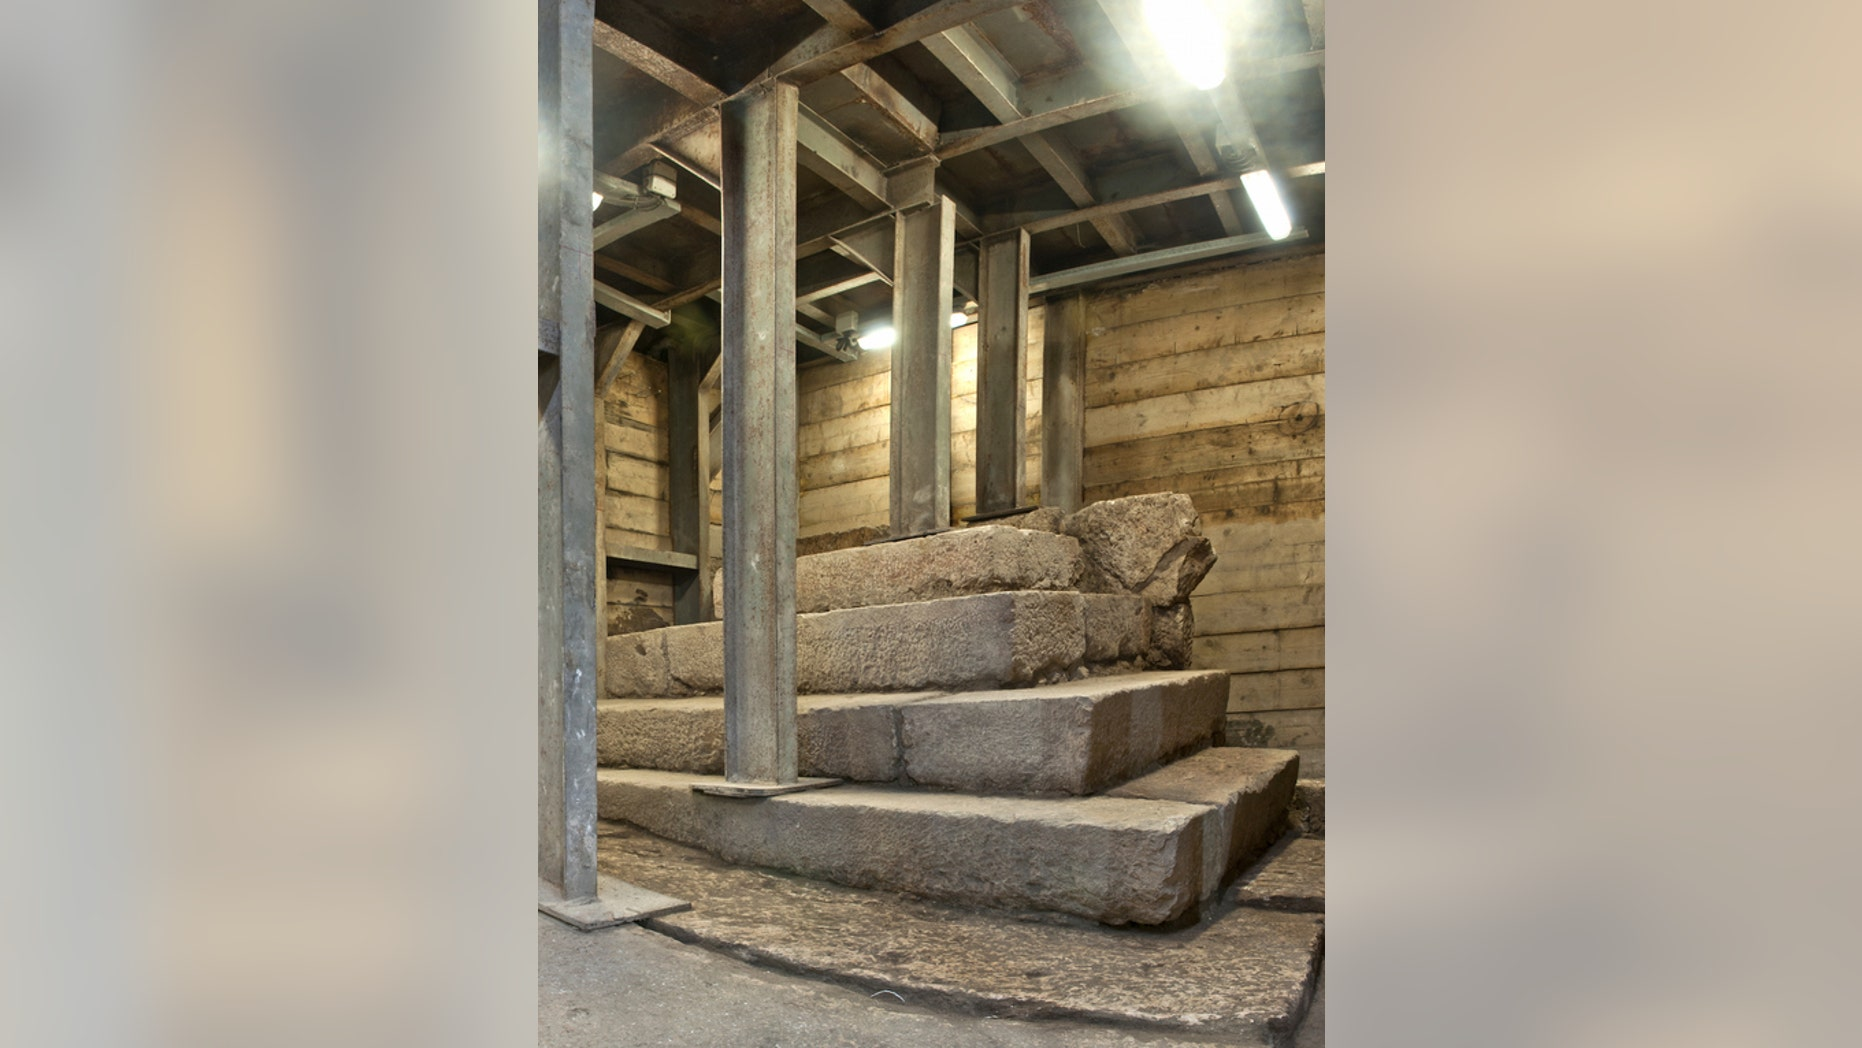 A mysterious podium used by itinerant street preachers or perhaps as a primitive lost-and-found has been unearthed in the ancient city of Jerusalem. The podium is nearly 2,000 years old.